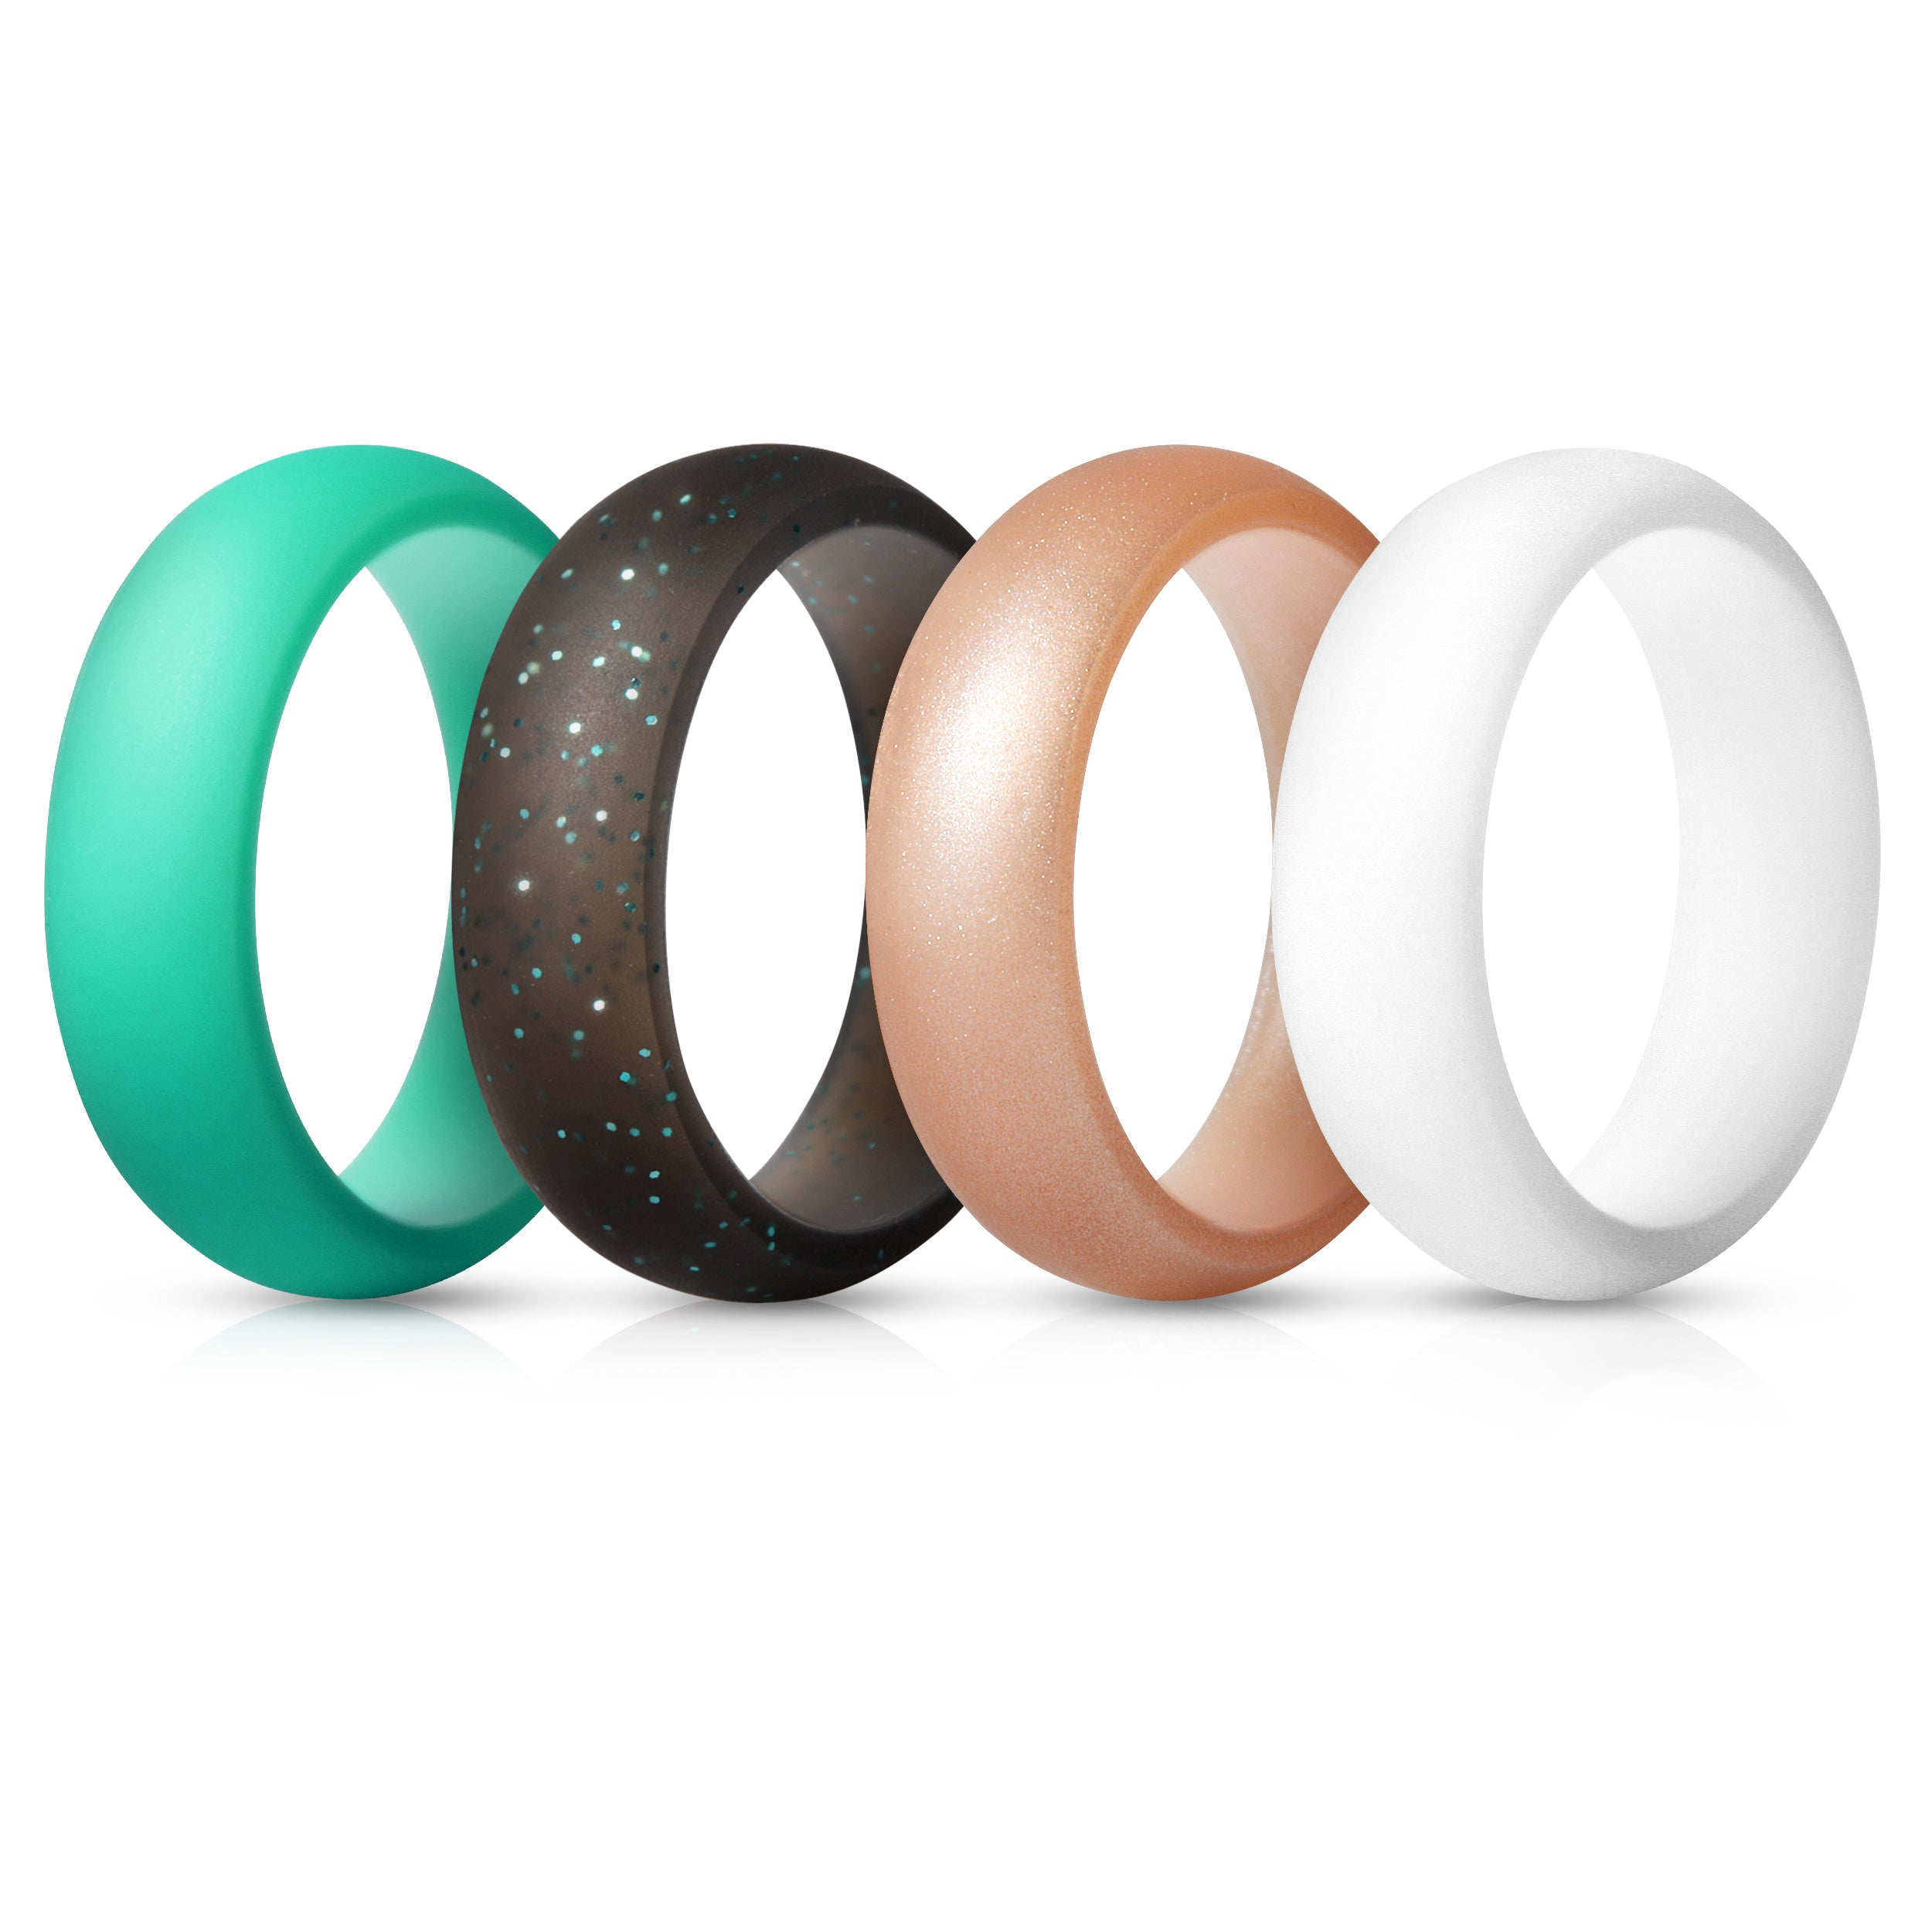 Women's Rings 4 Pack - Rose Gold, White, Teal, Black with Teal Glitter